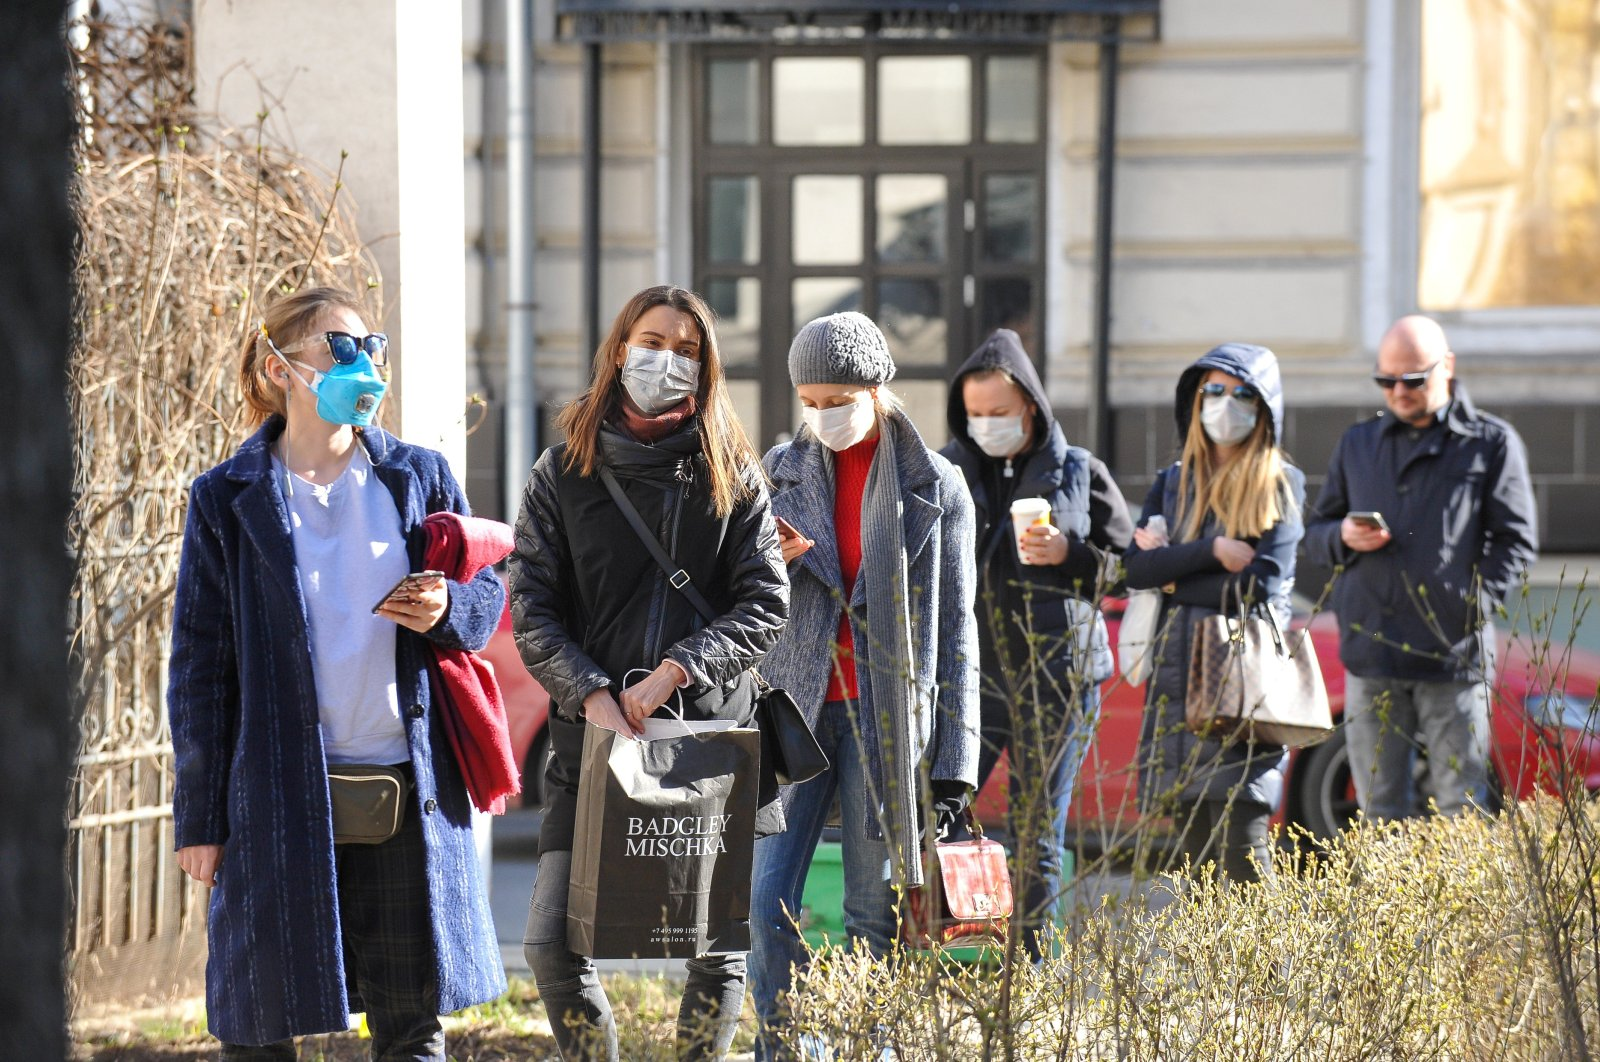 People queue before undergoing medical tests to detect coronavirus infection at a laboratory, Moscow, Thursday, March 26, 2020. (REUTERS Photo)